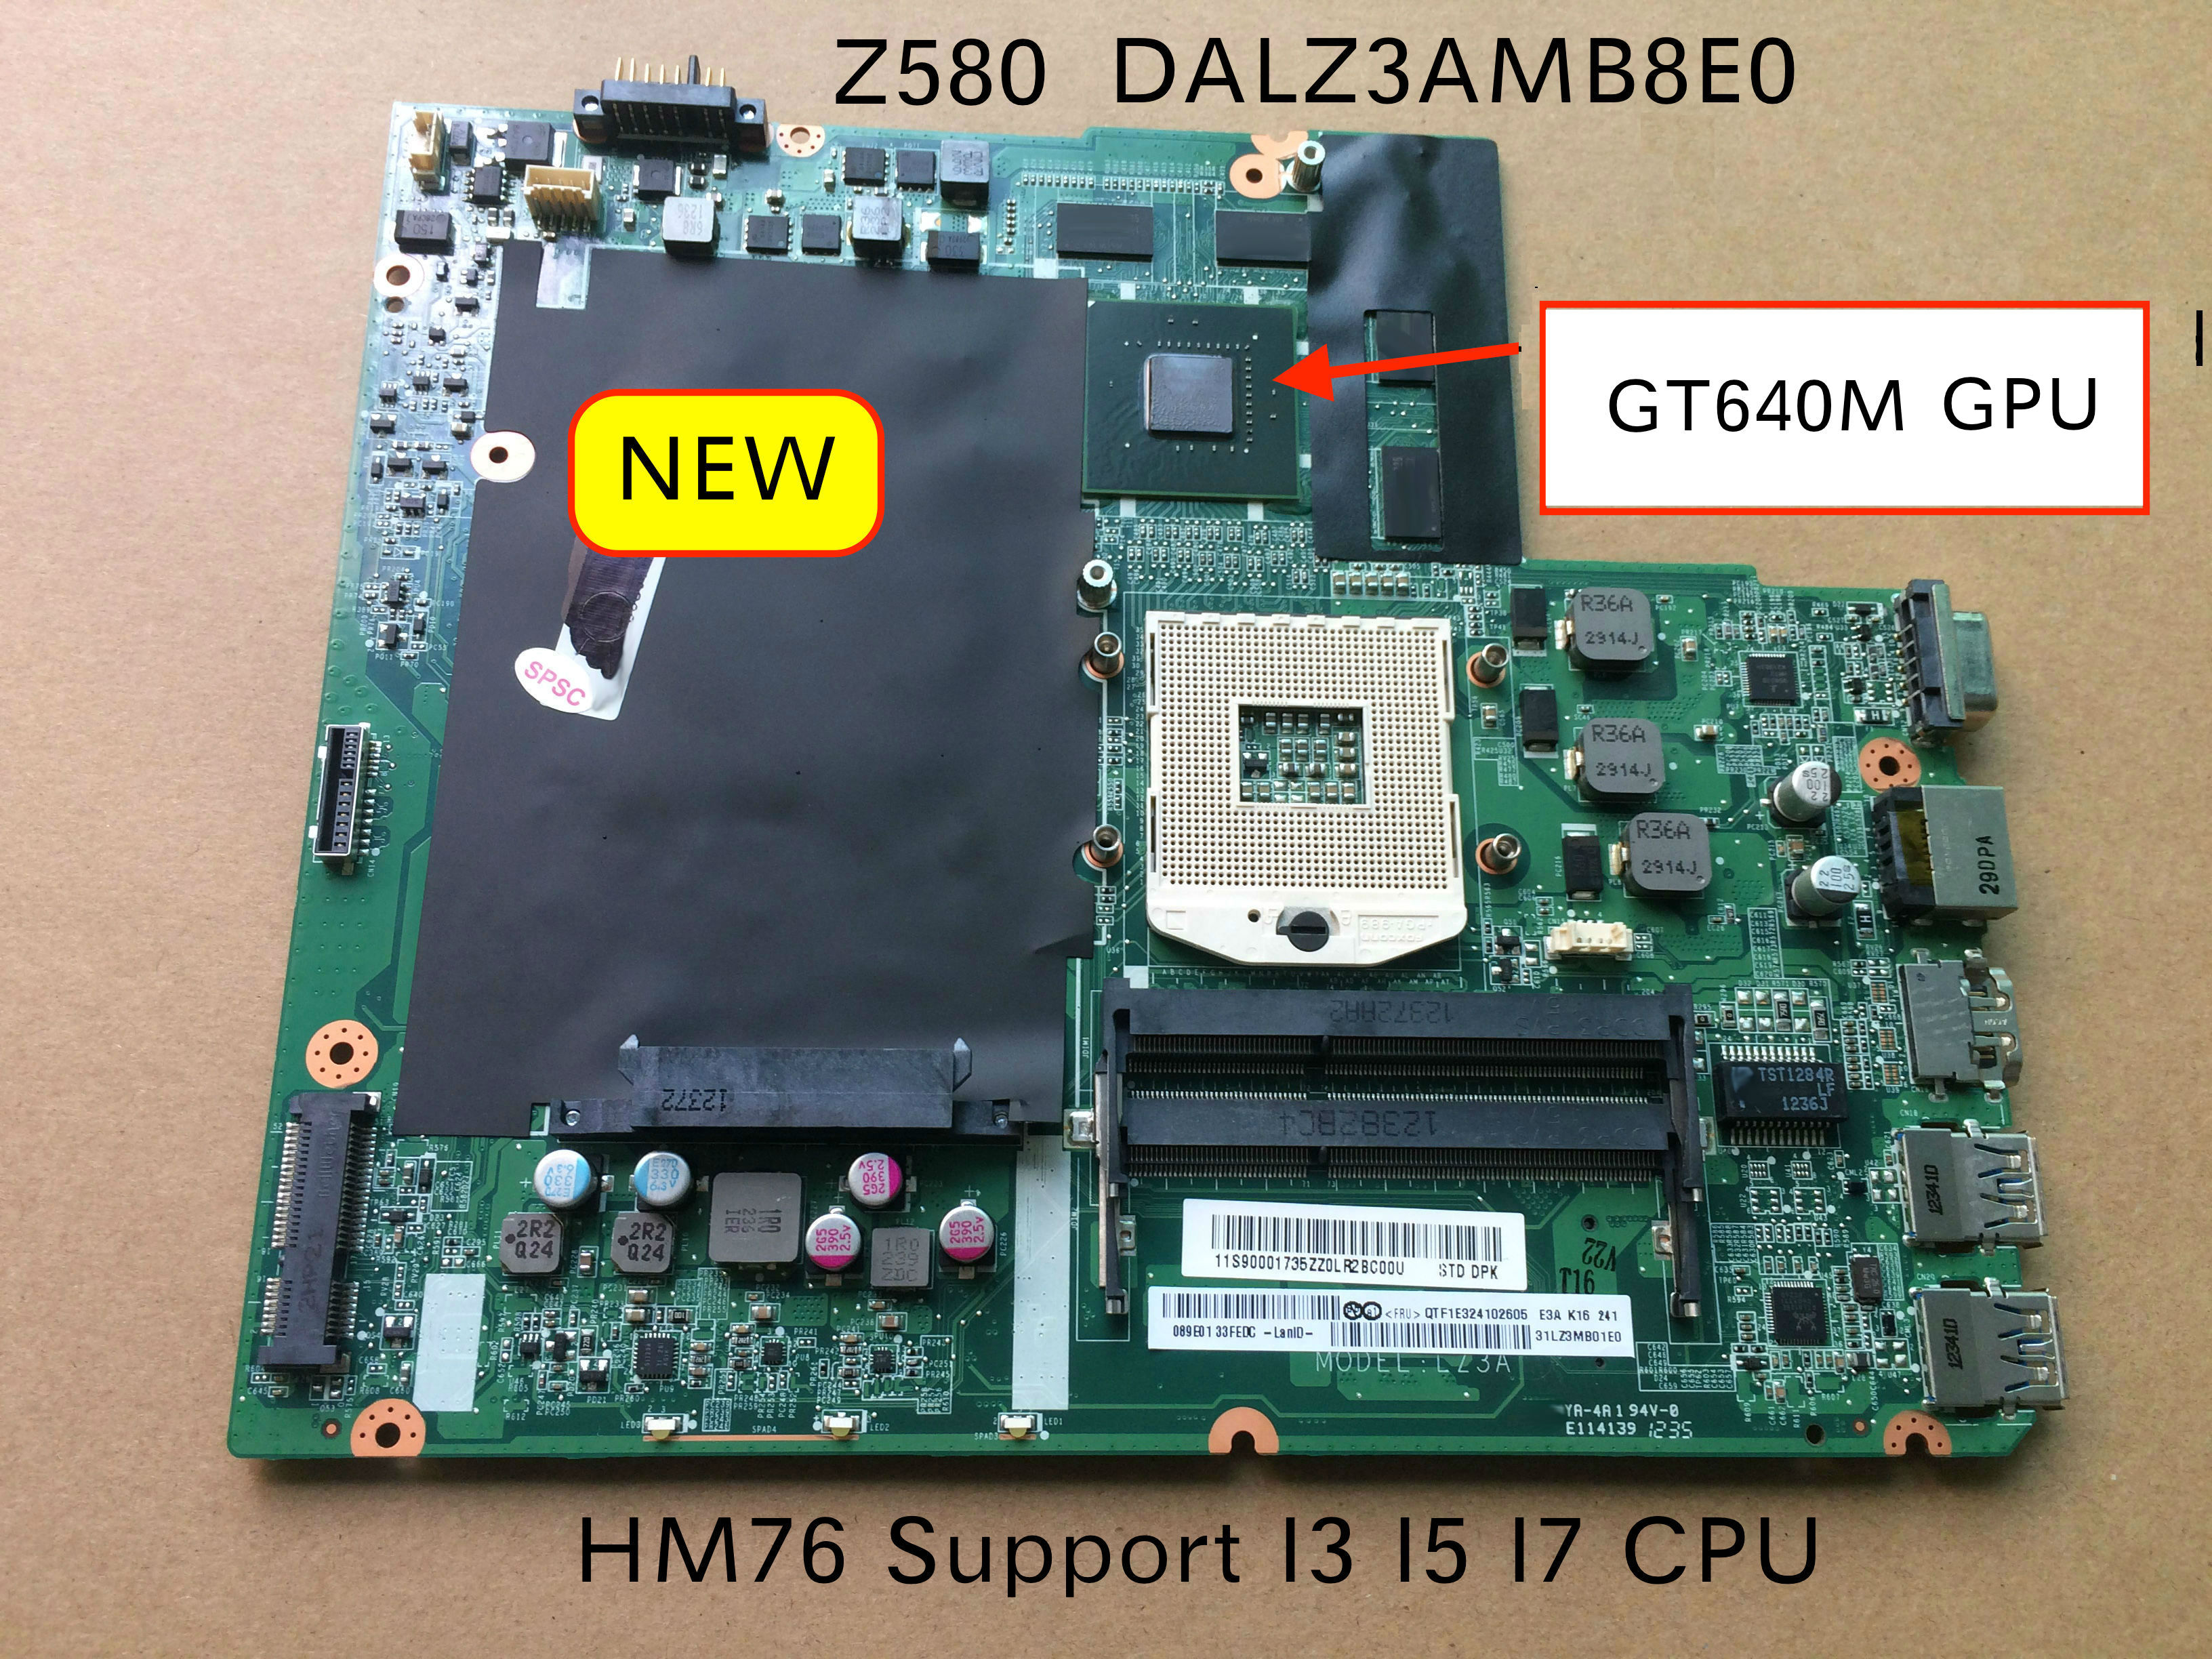 Free Shipping 90000273 DALZ3AMB8E0 mainboard For Lenovo Ideapad z580 Laptop Motherboard with Nvidia GT640M video cardFree Shipping 90000273 DALZ3AMB8E0 mainboard For Lenovo Ideapad z580 Laptop Motherboard with Nvidia GT640M video card